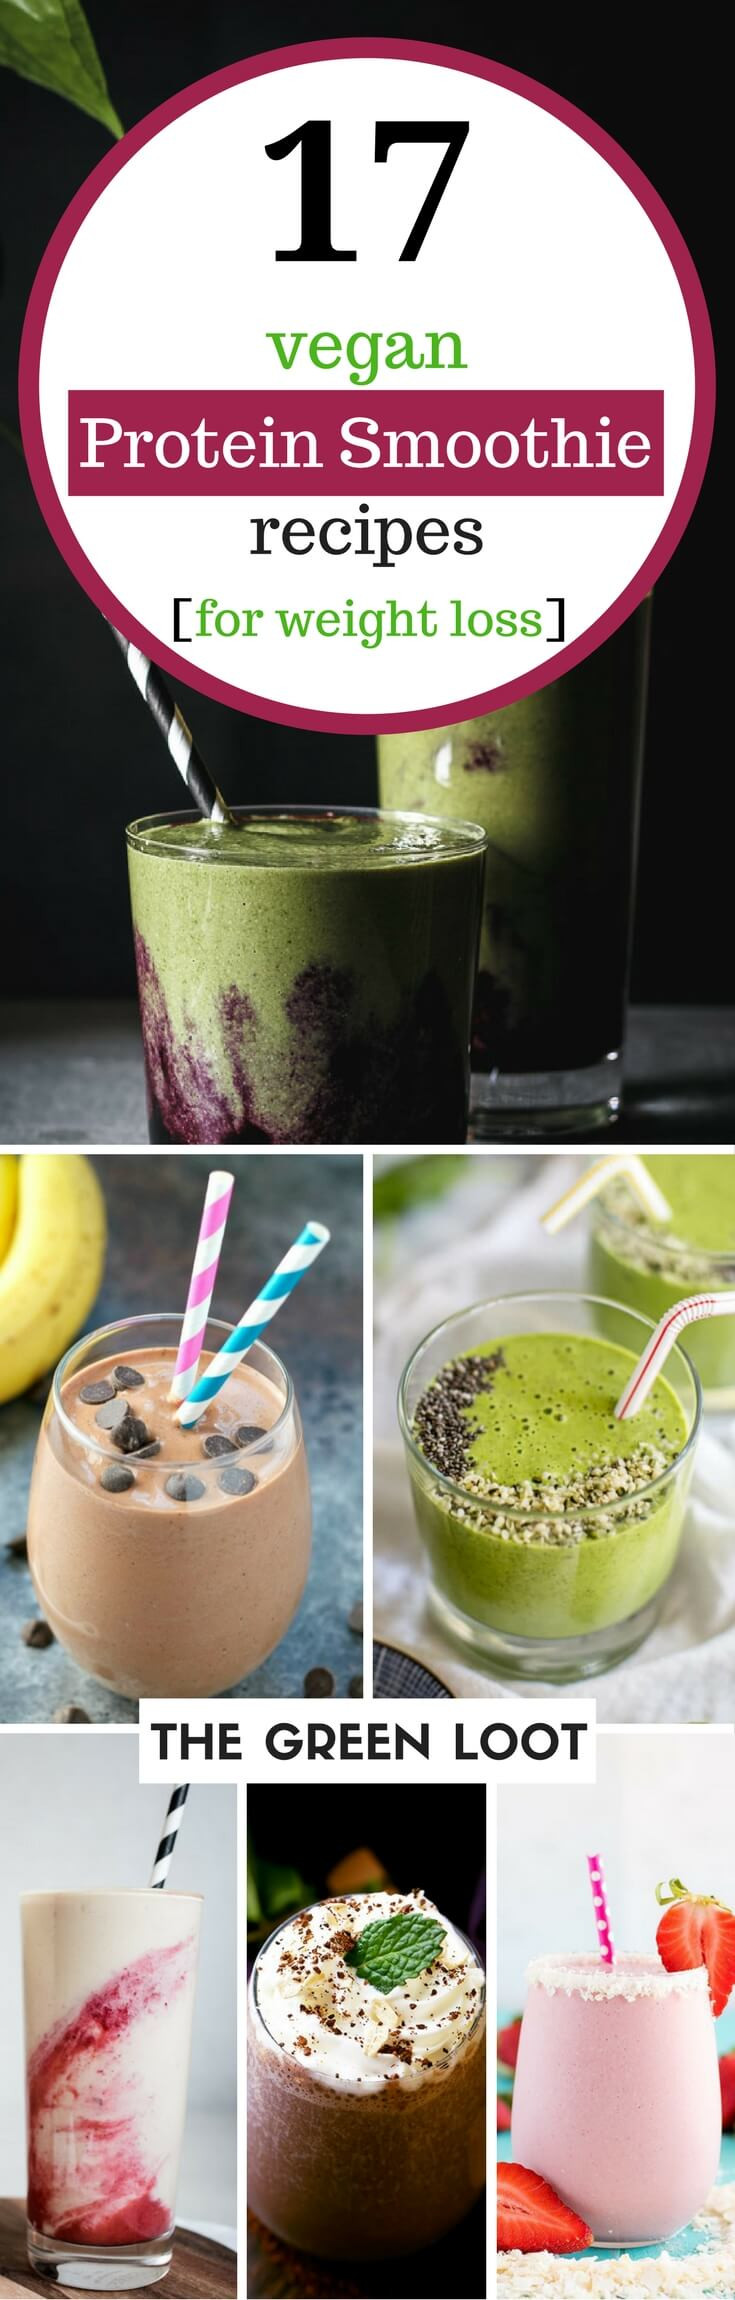 Protein Smoothies For Weight Loss  17 Tasty Vegan Protein Smoothie Recipes for Weight Loss